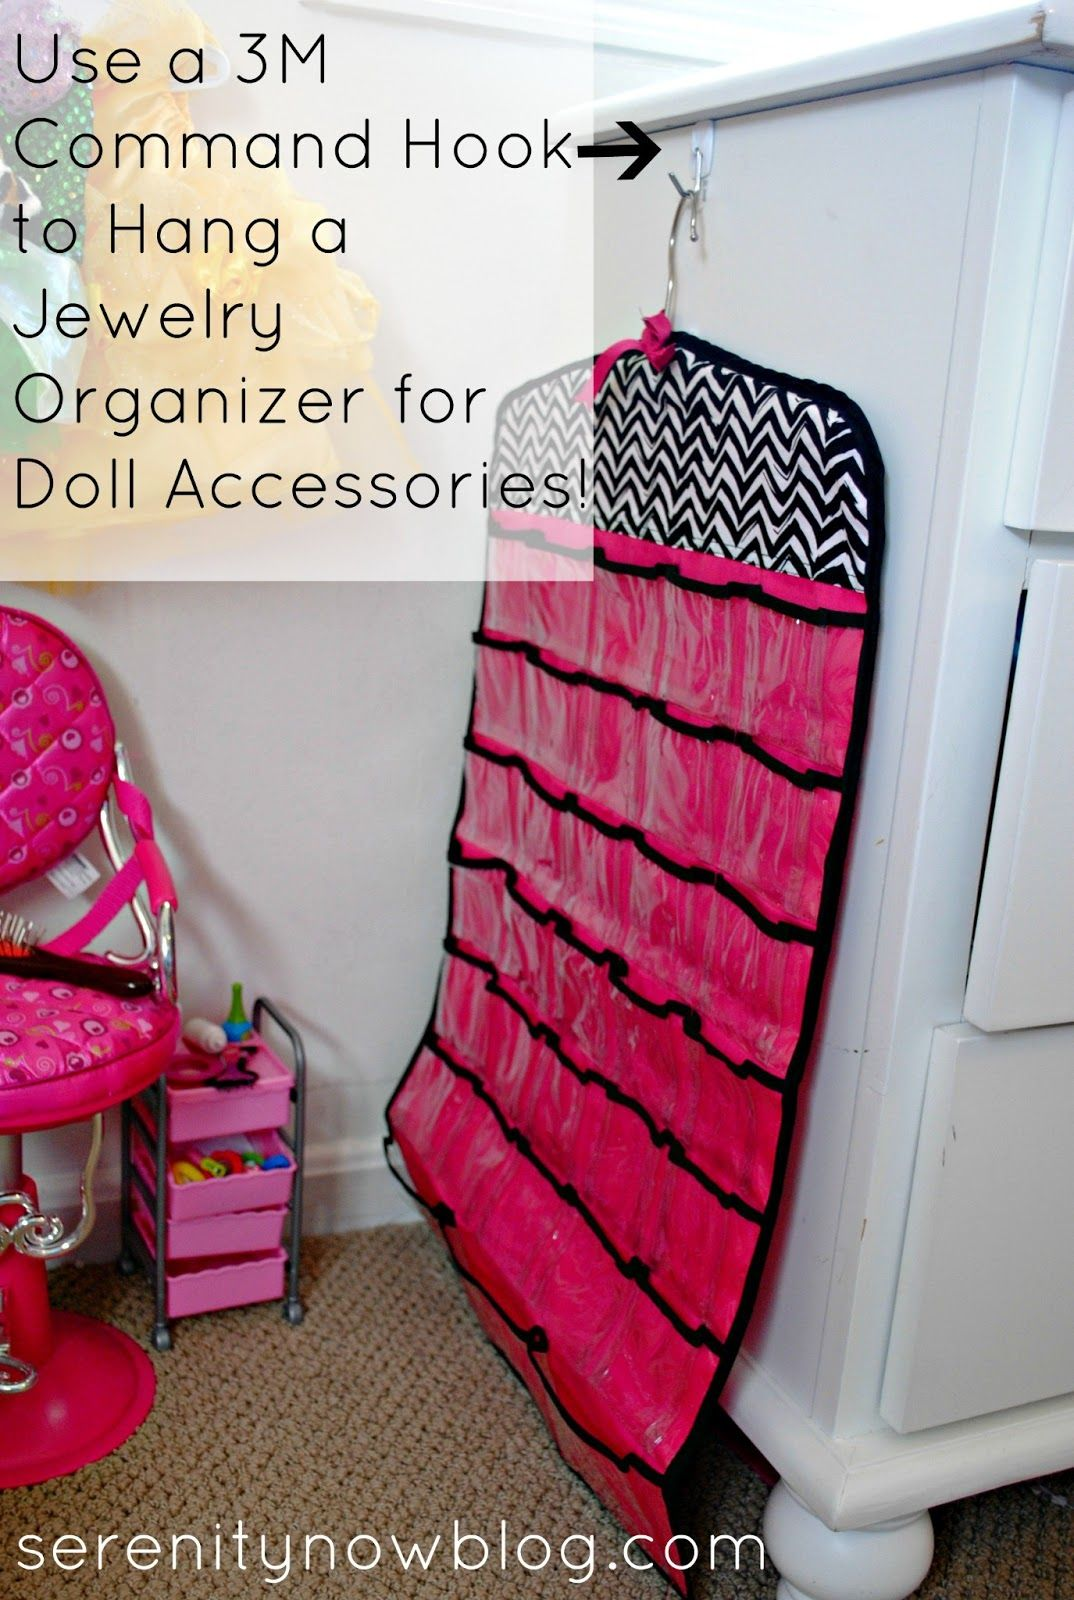 Use a 3M Command Hook to Hang a Jewelry Organizer for doll stuff